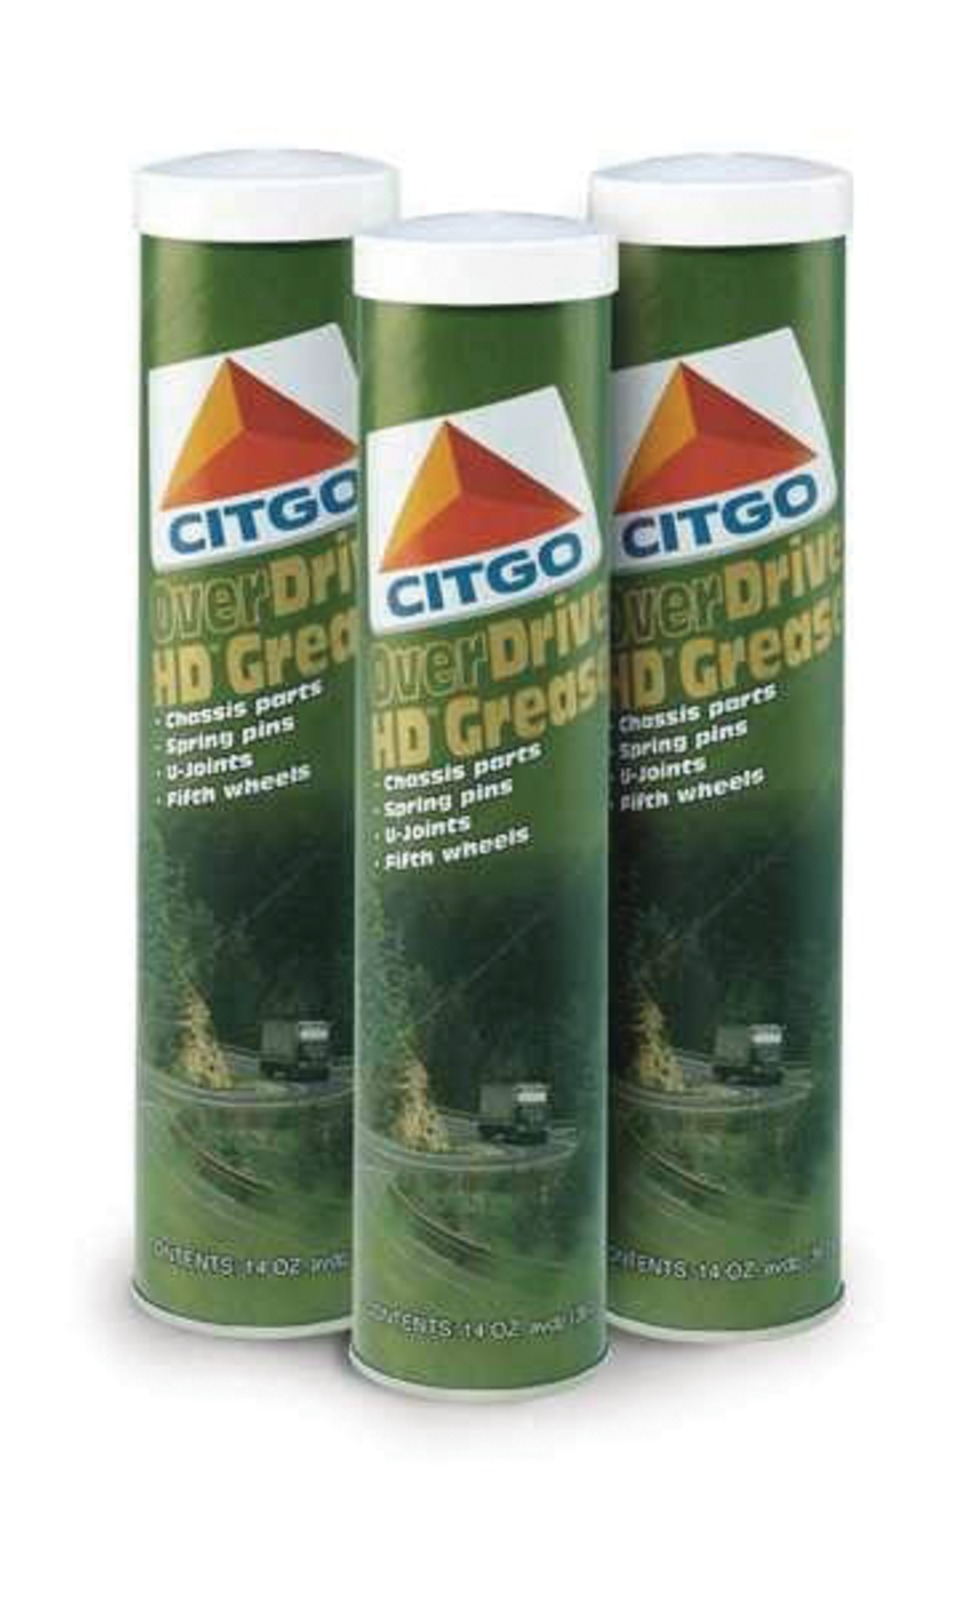 Citgo Lubricants Citgo Overdrive Hd Grease In Lubricants